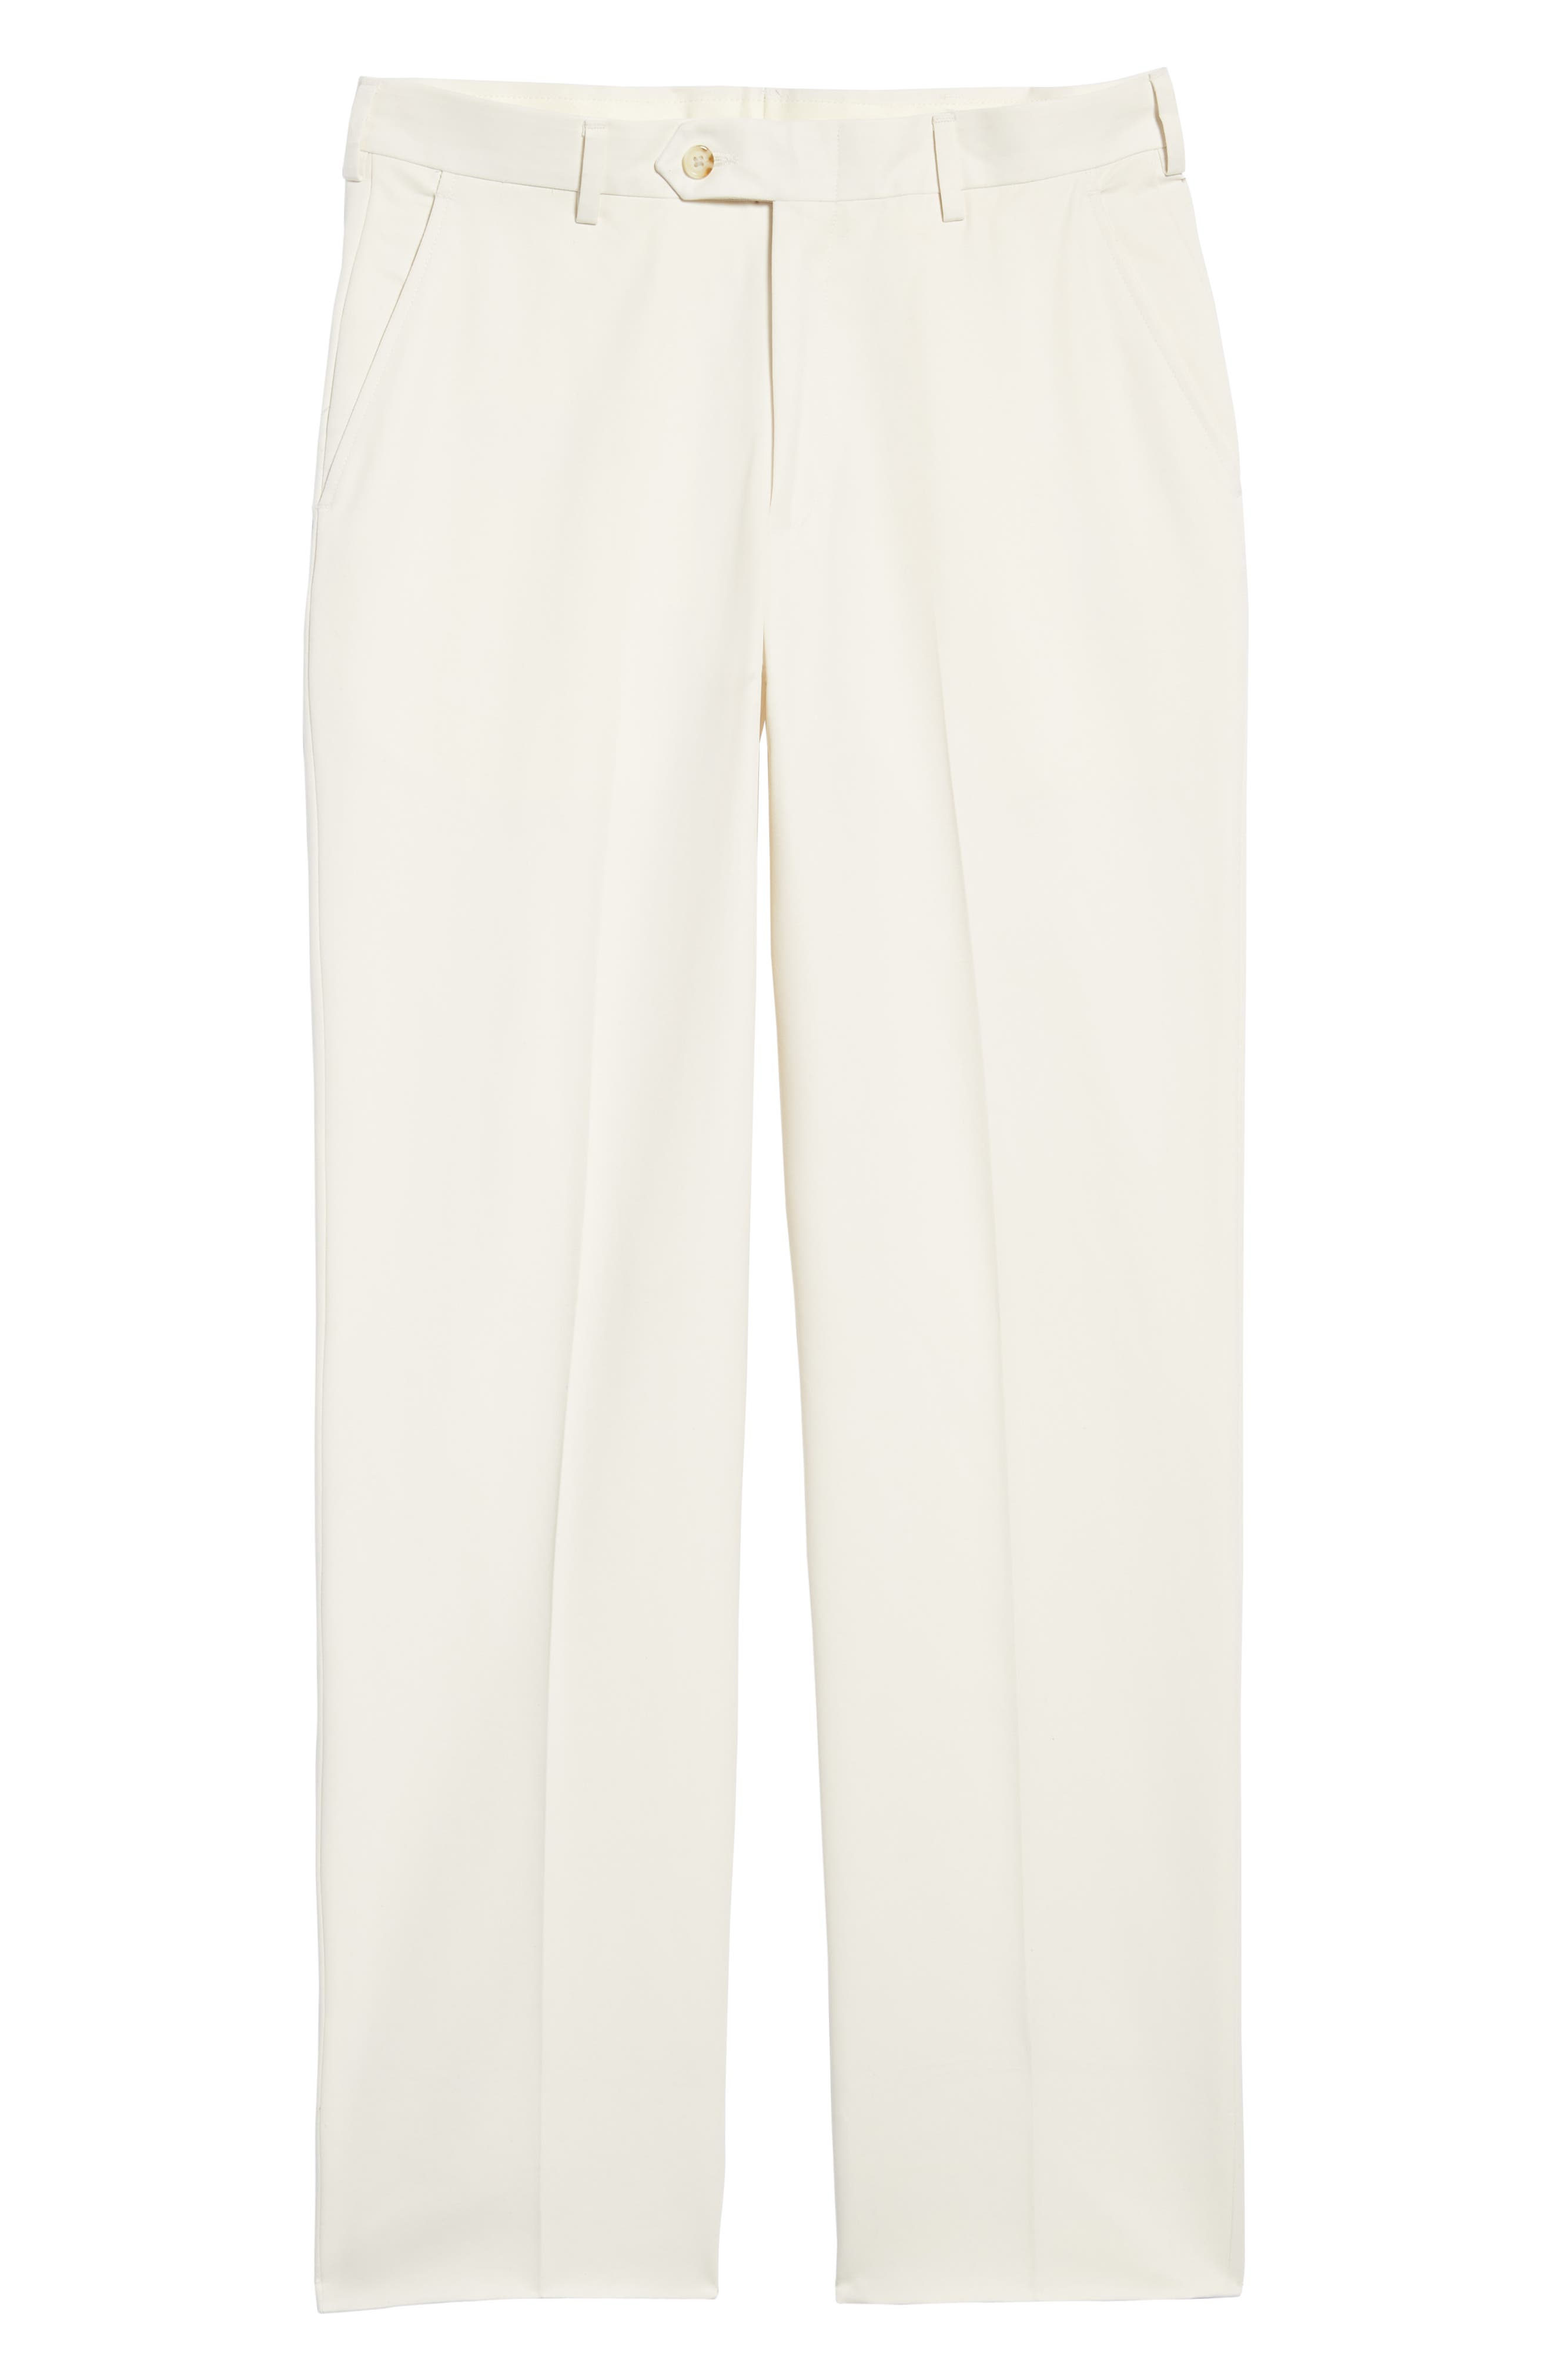 Classic Fit Flat Front Microfiber Performance Trousers,                             Alternate thumbnail 6, color,                             OFF WHITE